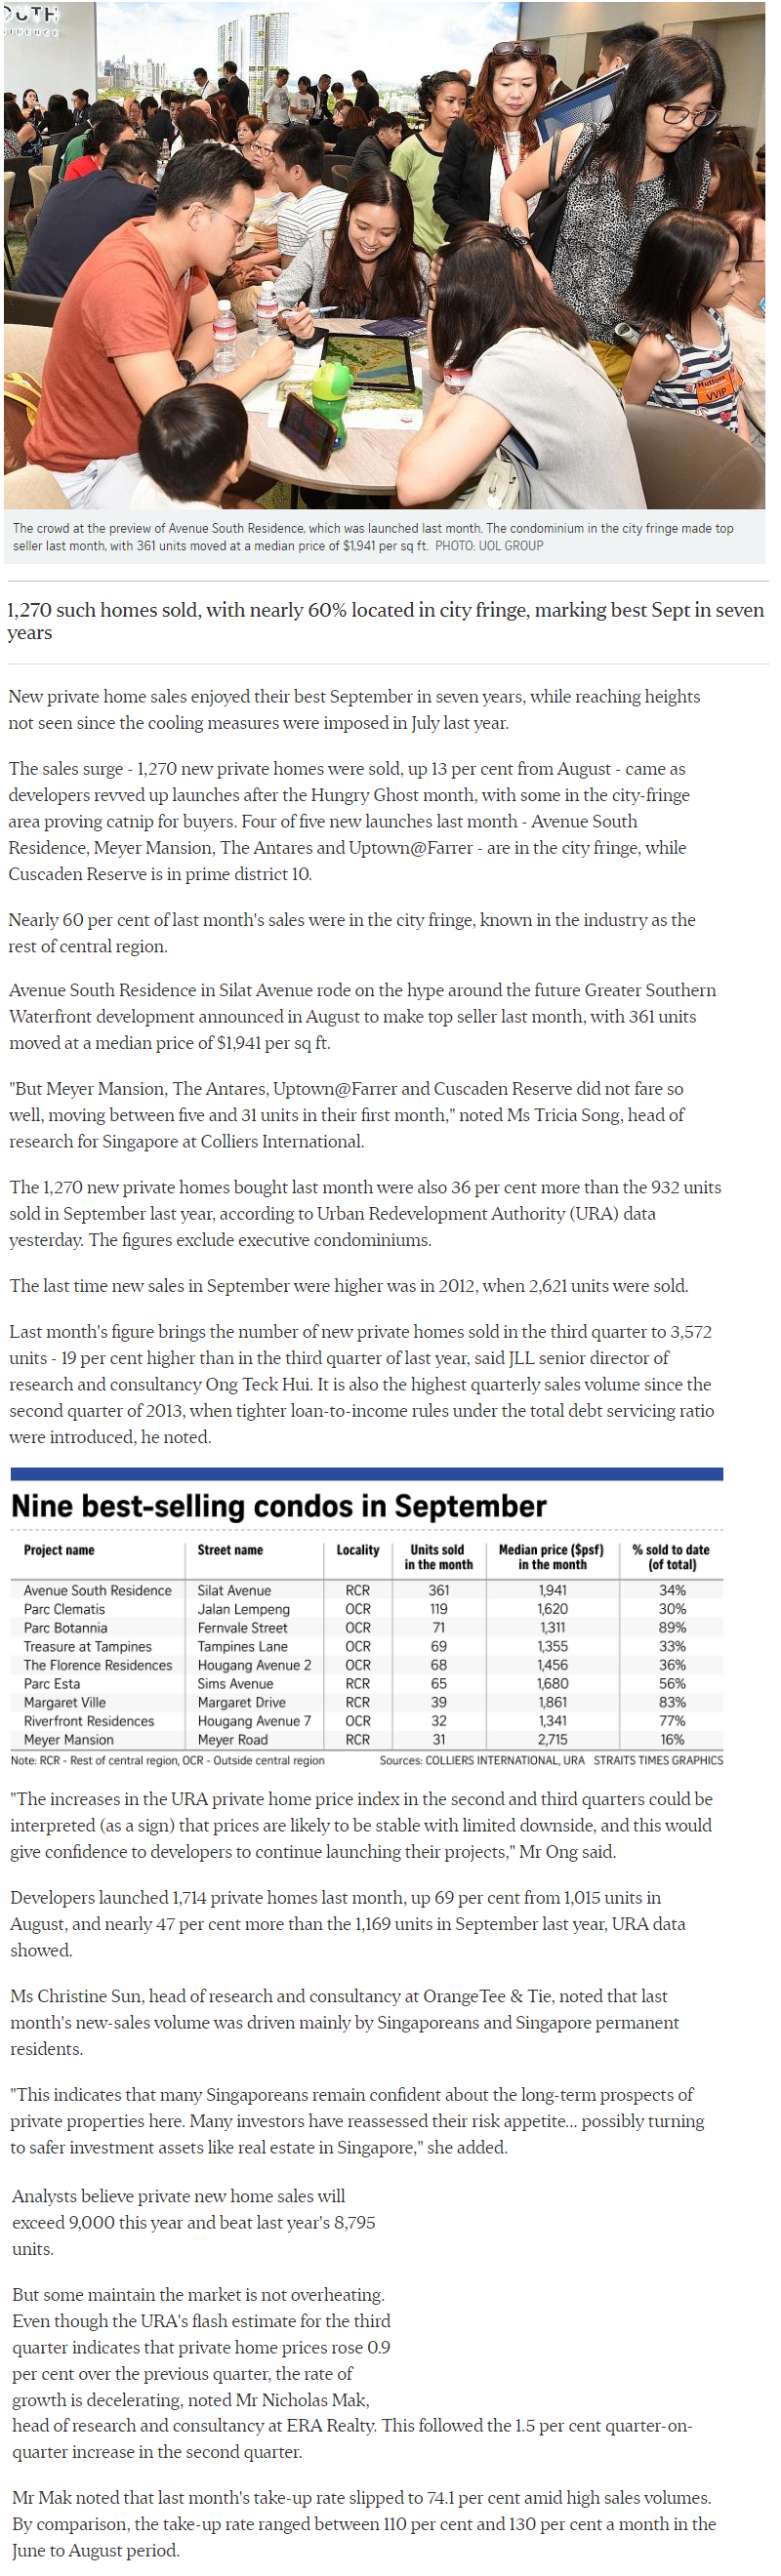 The Woodleigh Residences - New private Home Sales Hit A Hight In September